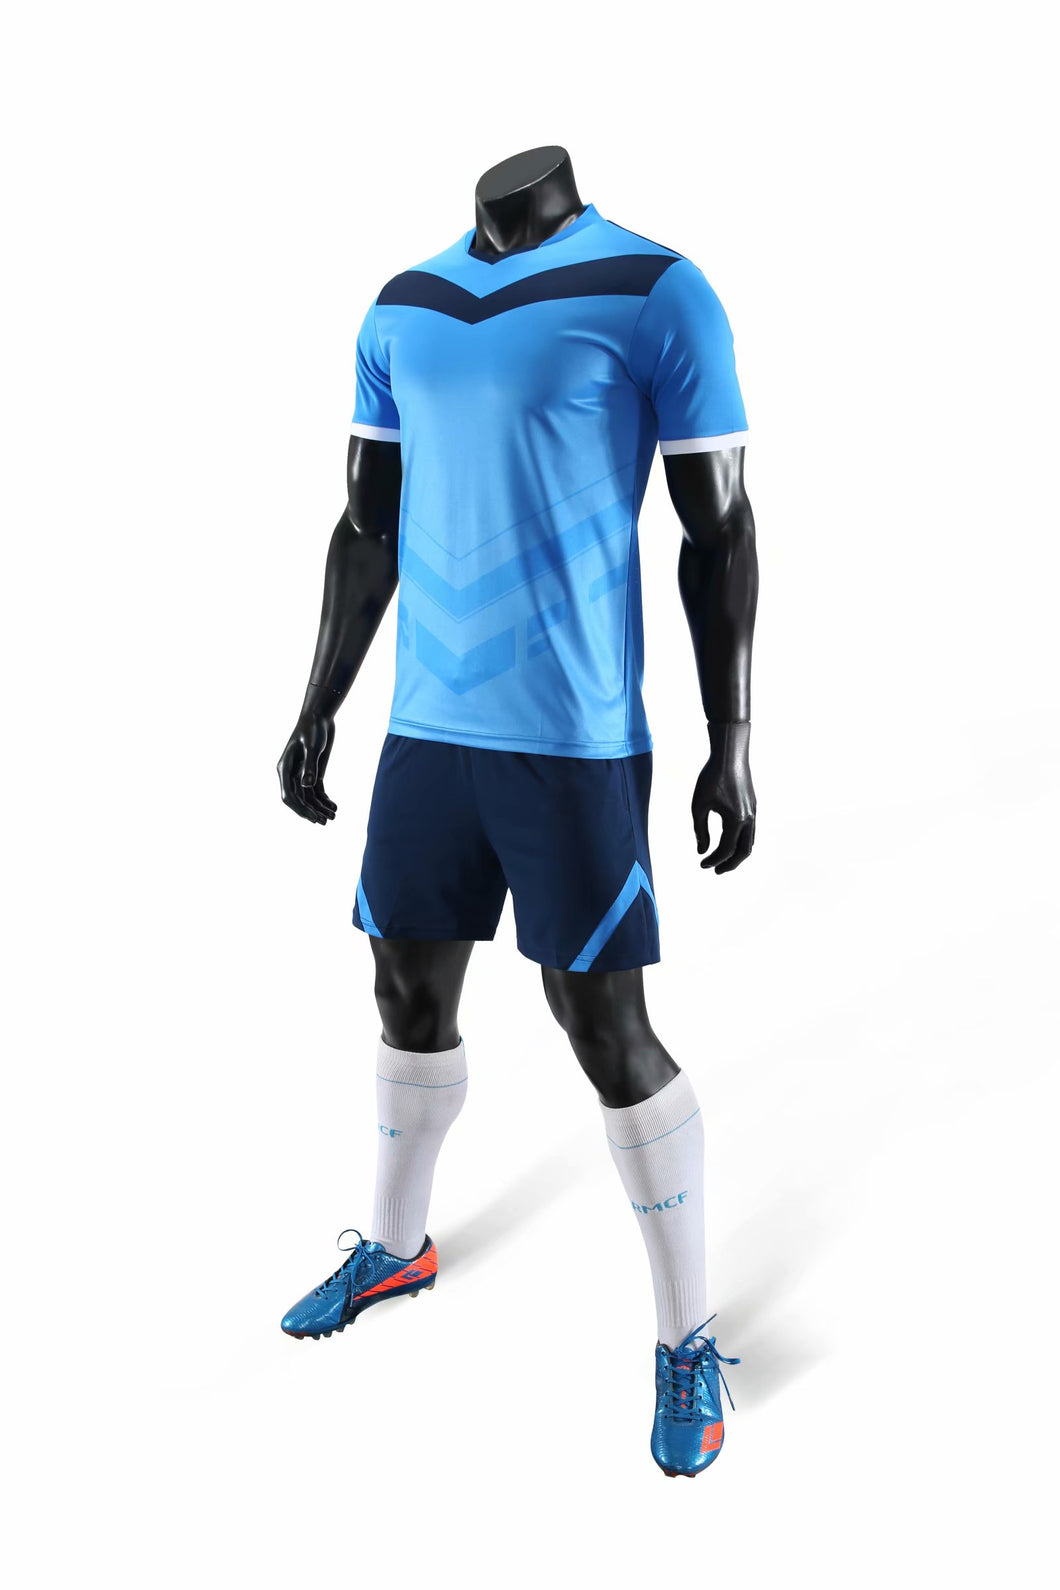 Junior Football Kit - Blue and Black arrow